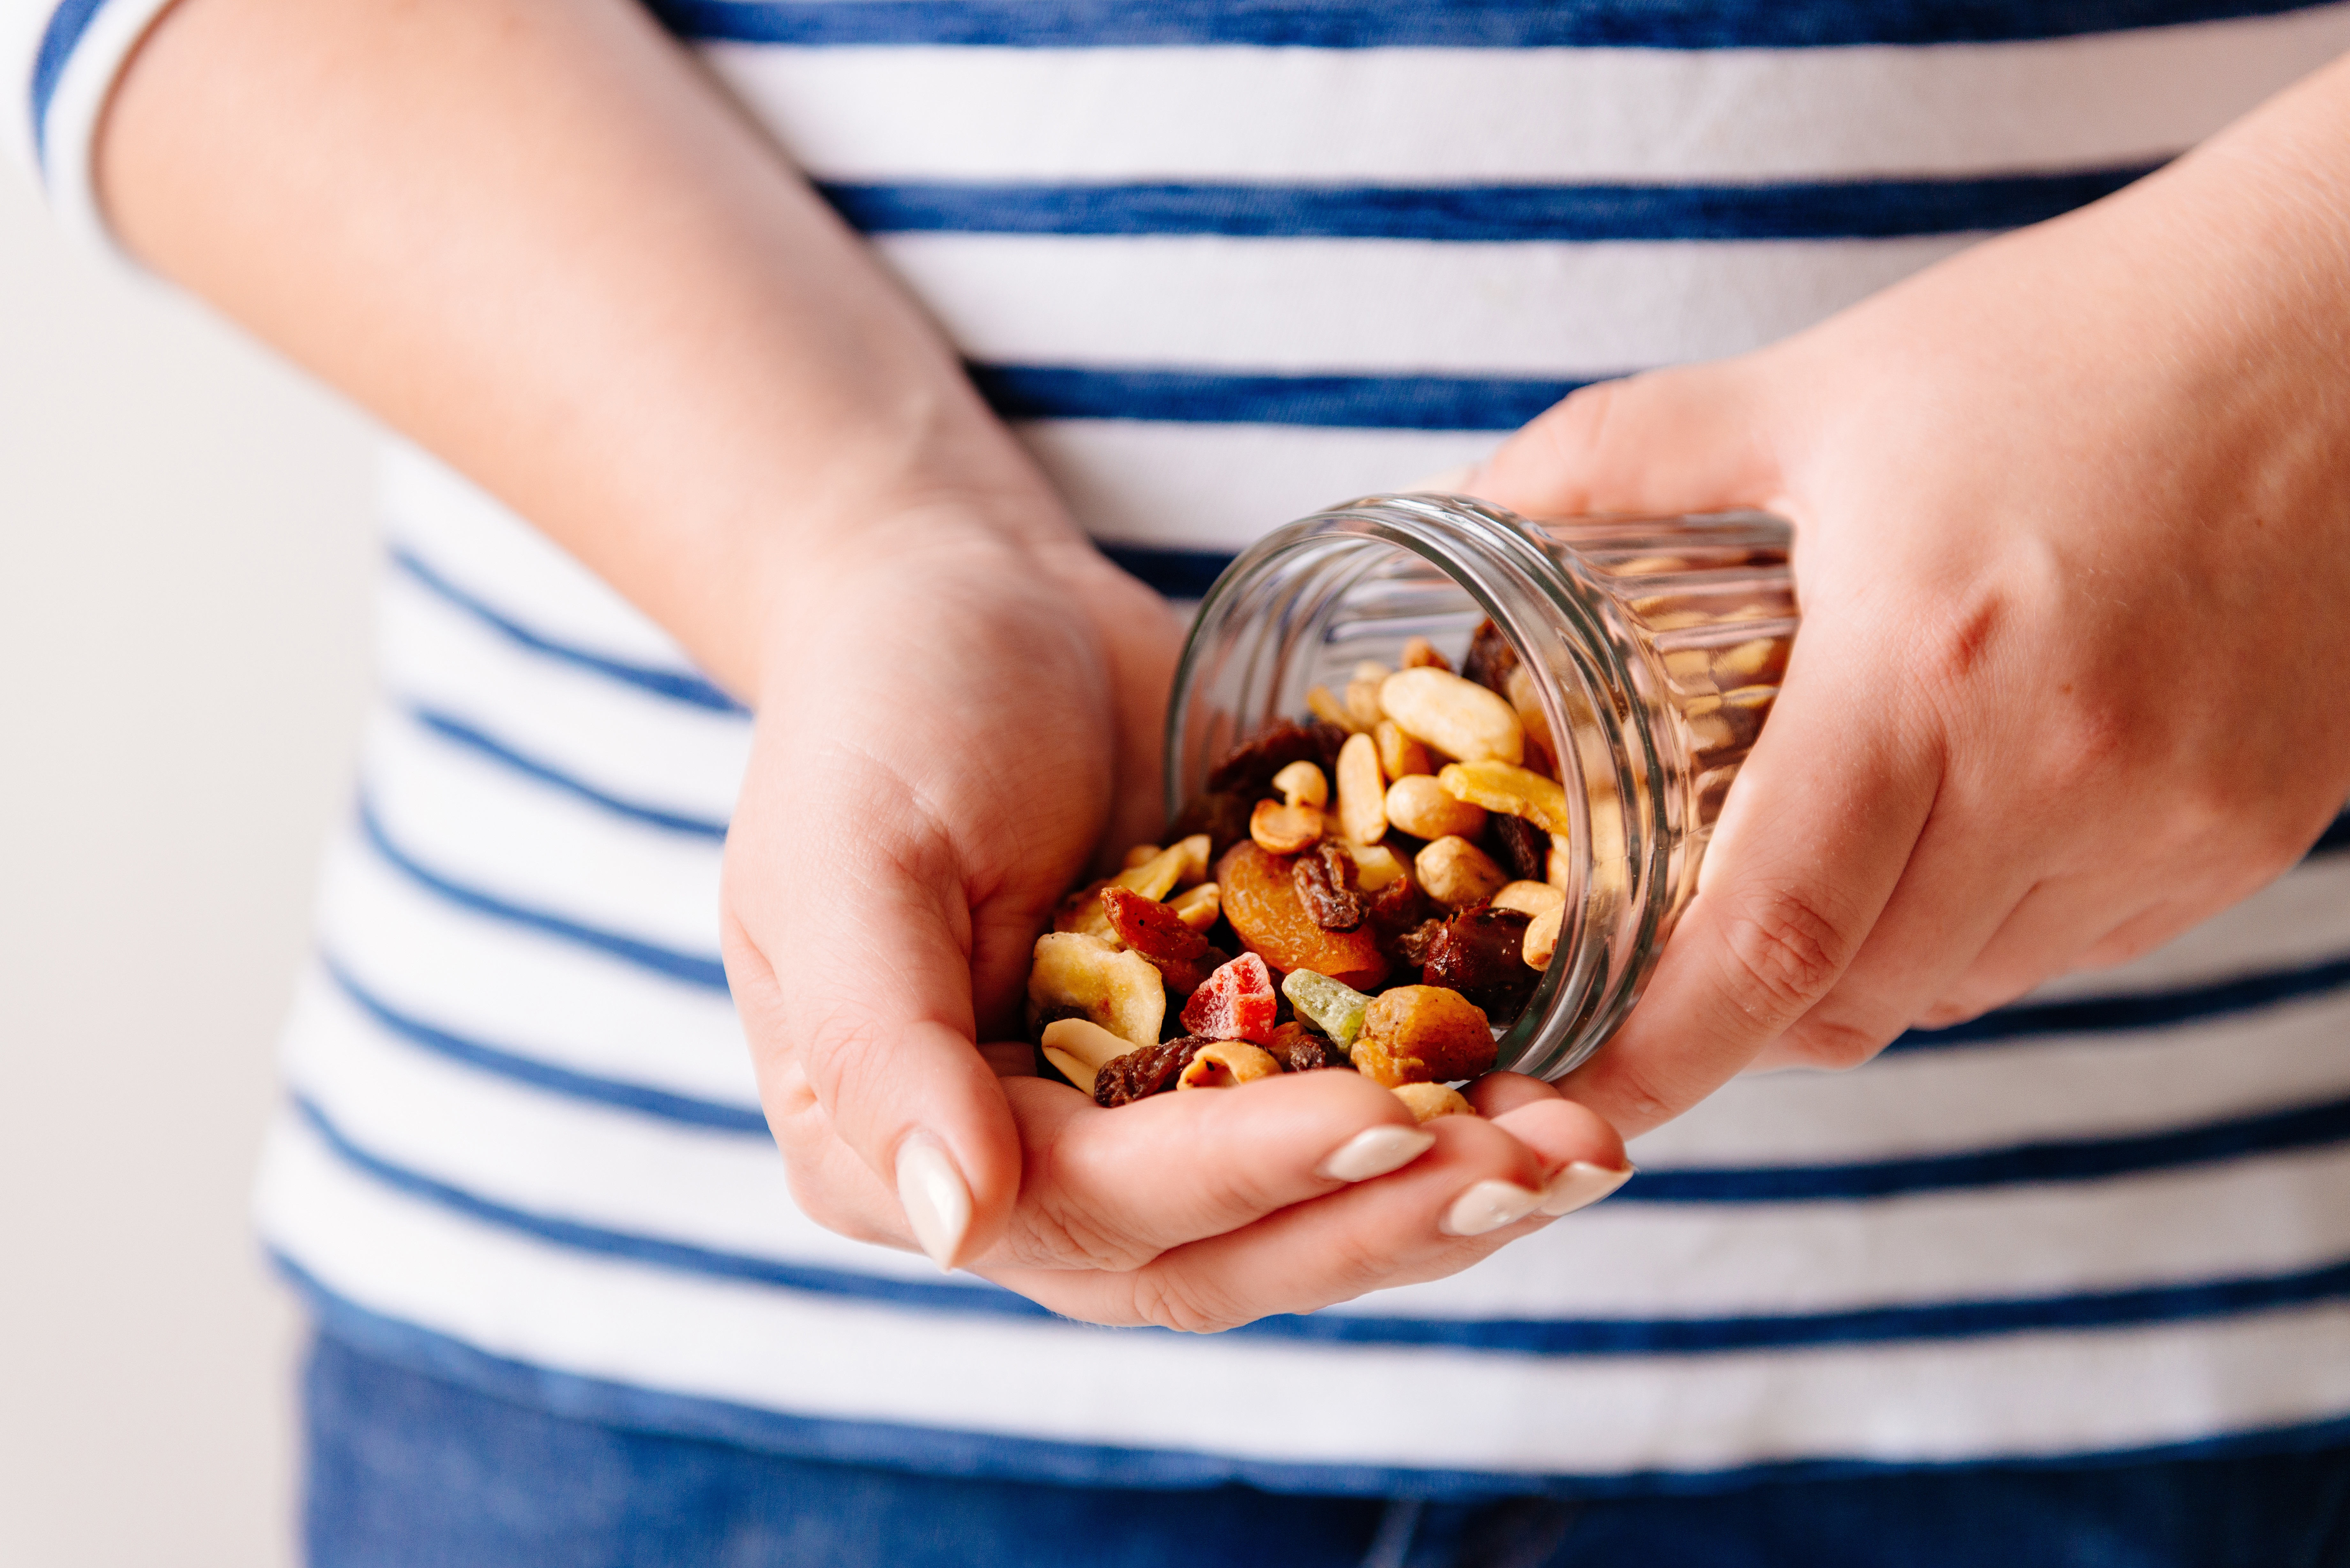 trail mix in hand